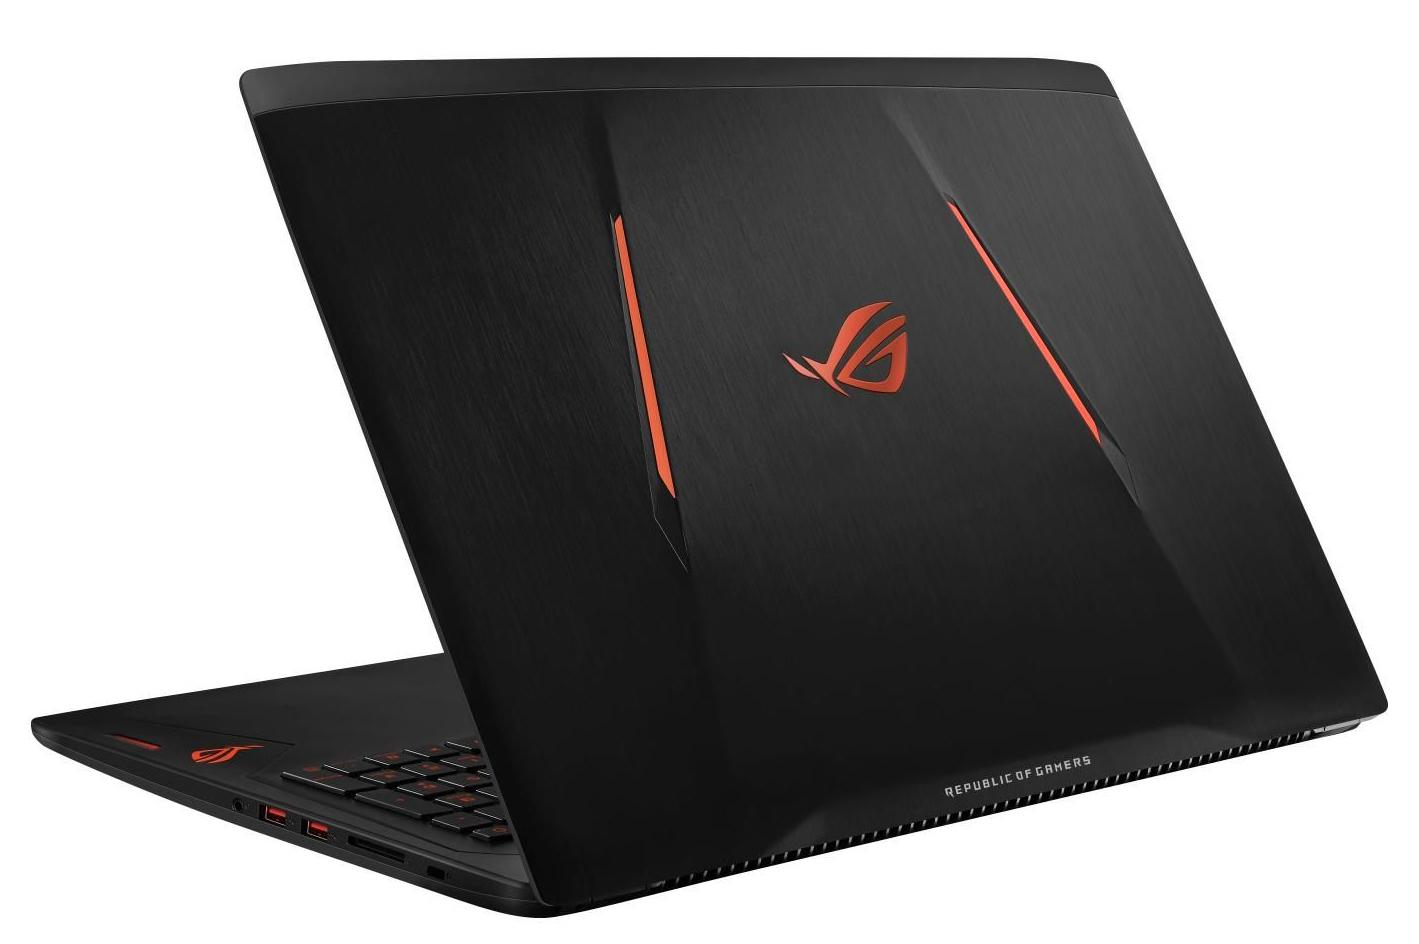 ASUS ROG Strix GL502VM-FY219T | Intel Core i7-7700HQ | 16GB DDR4 Ram | 128GB M.2 SSD + 1TB HDD |...